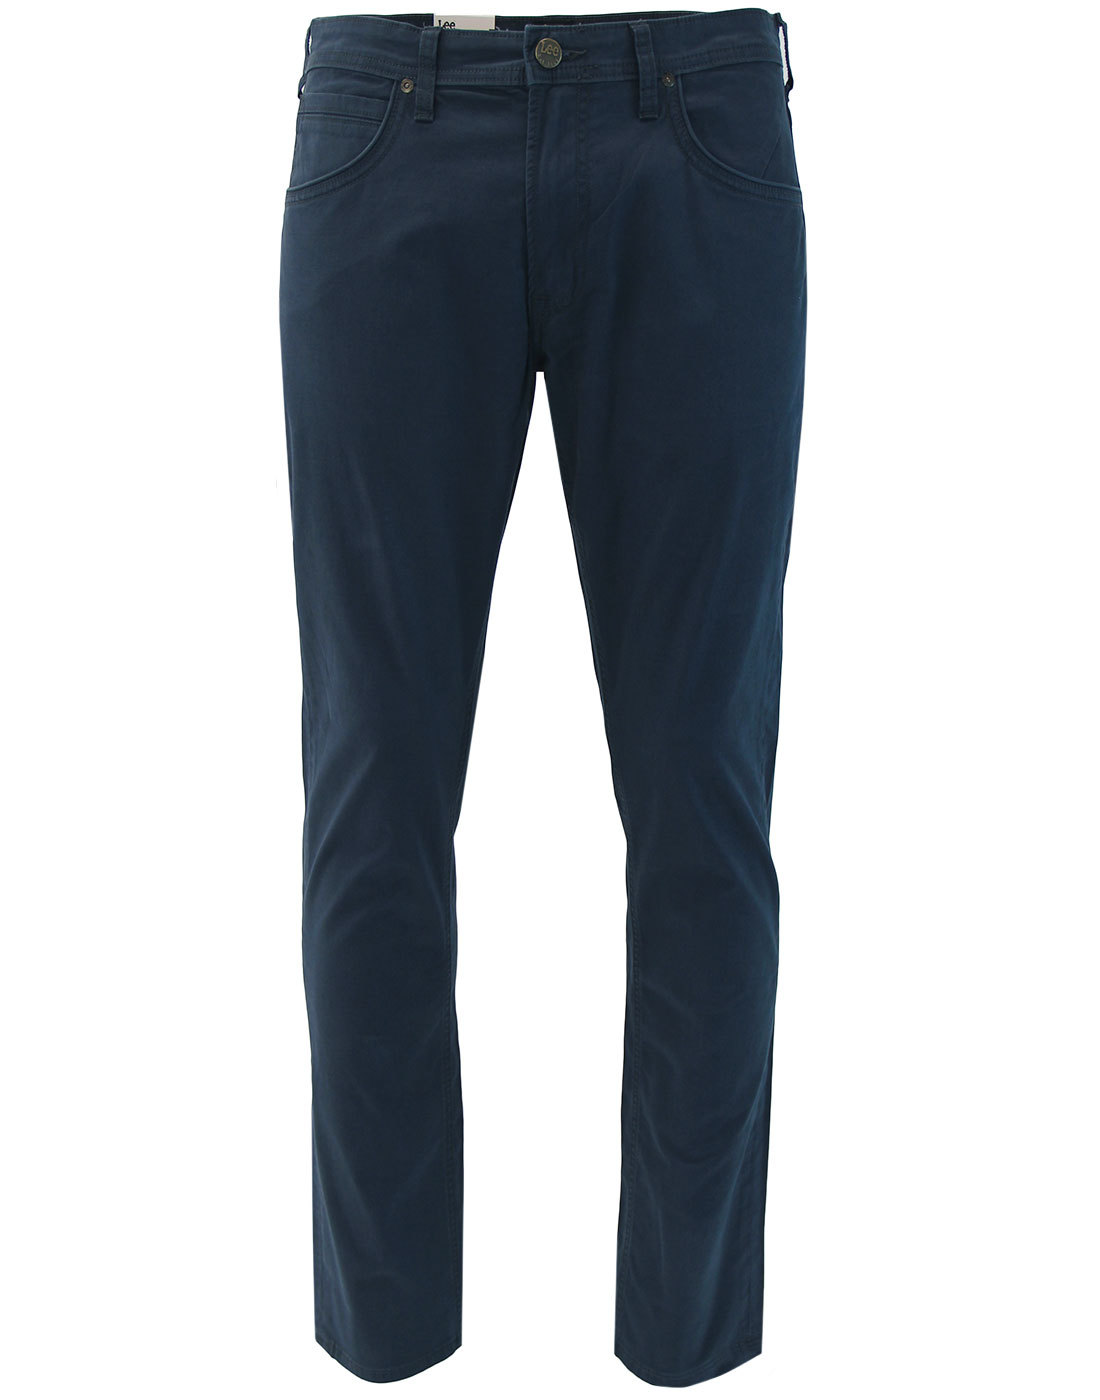 Daren LEE Retro Mod Slim Stretch Twill Chinos NAVY